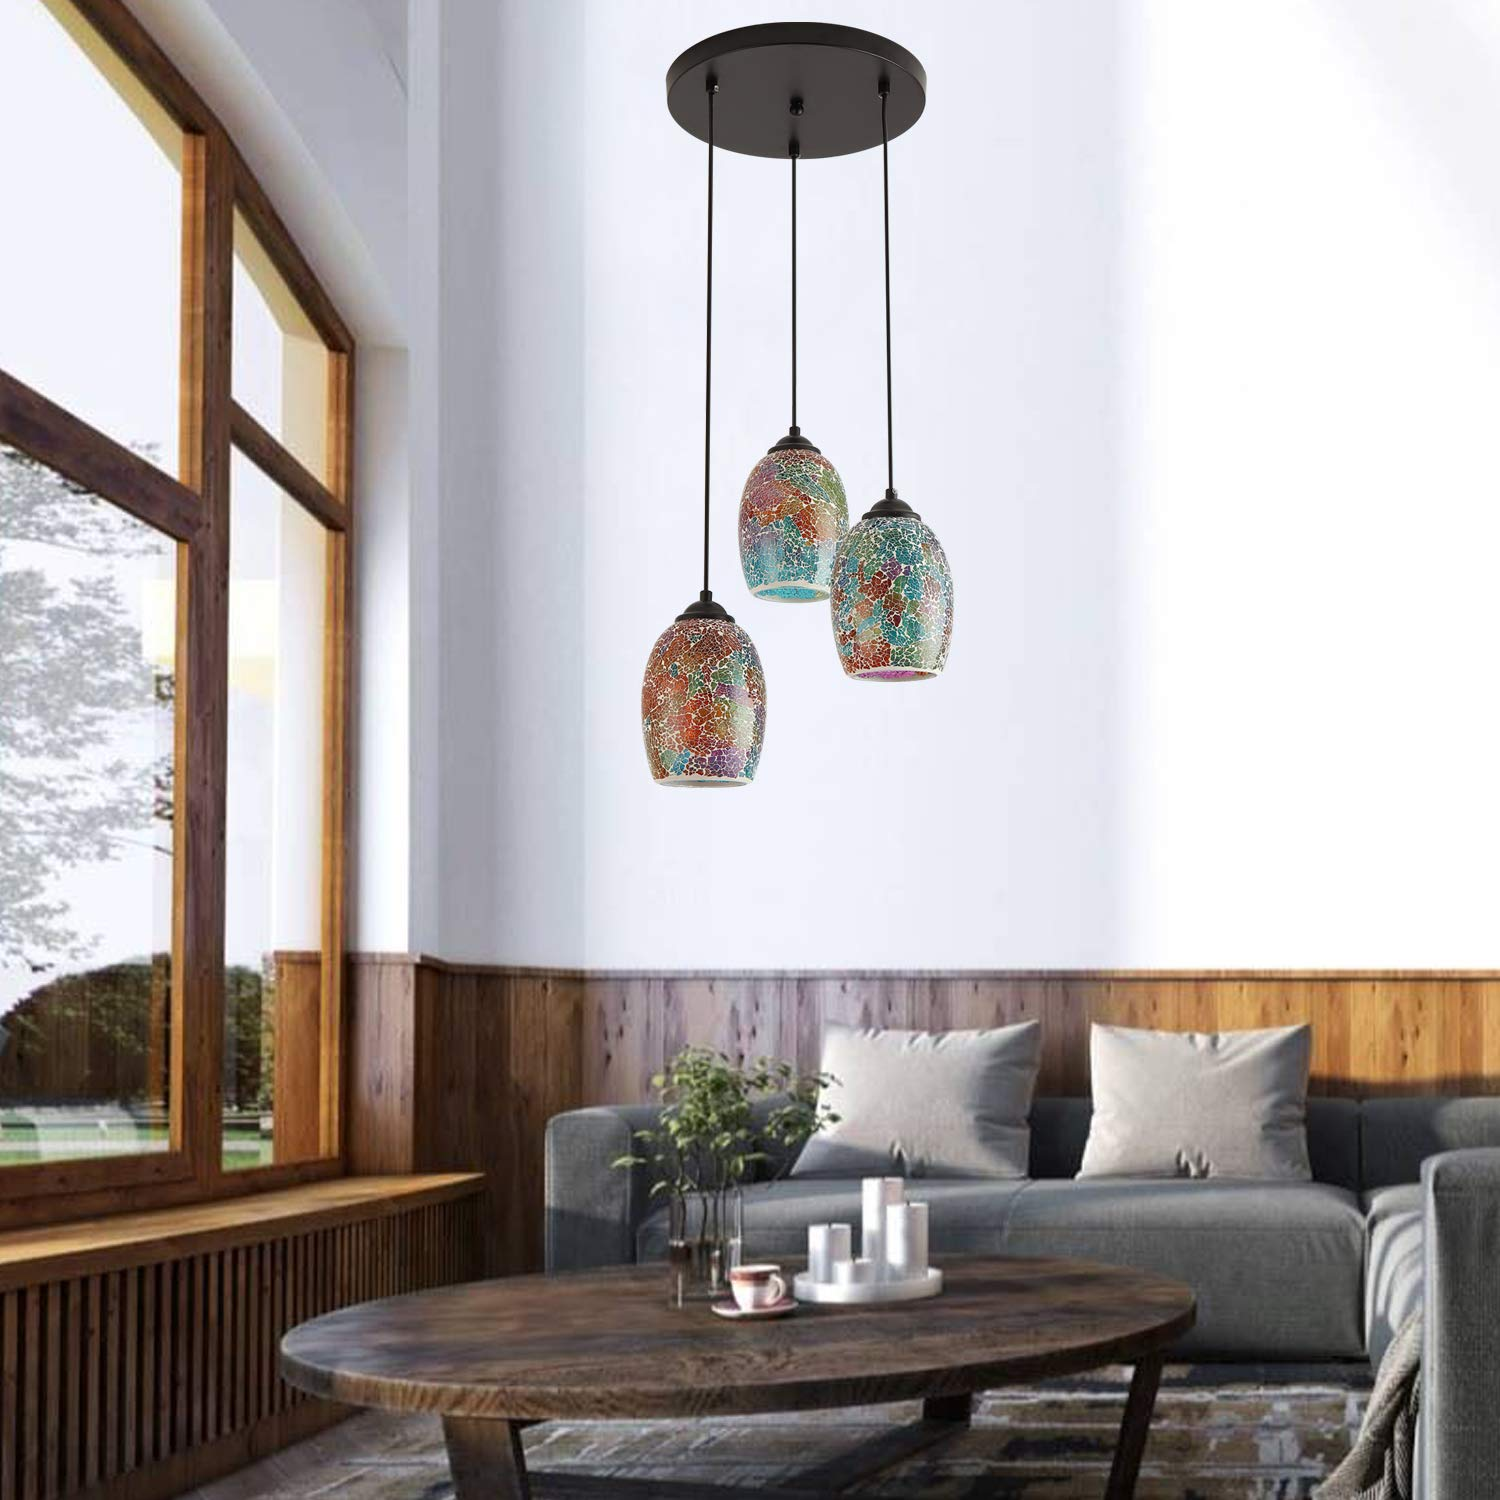 Hand Crafted Mosaic Colored Glass Shade Hanging Ceiling Lights,3 Lights Round Base Multi Pendant Lighting for Kitchen Island Dining Room Living Room Table Modern Kitchen Island Lighting